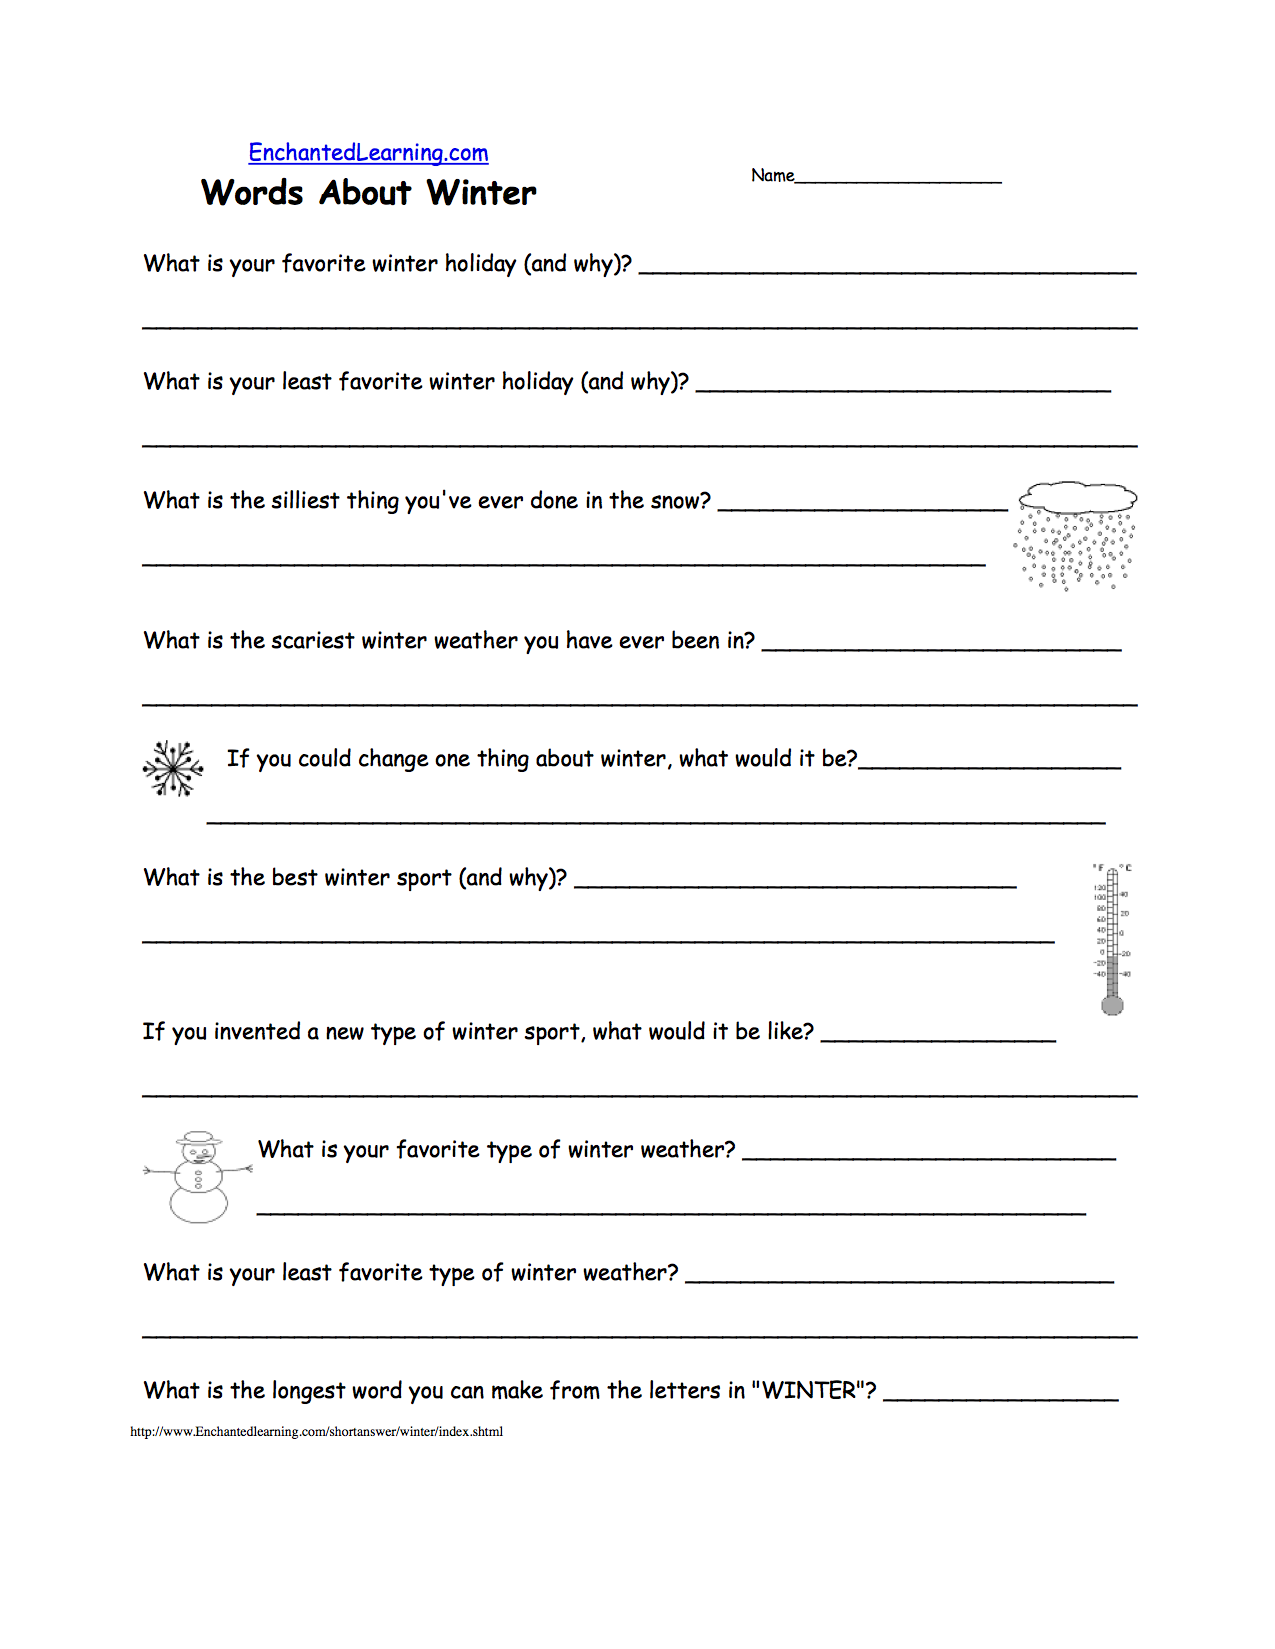 Printables Weather Worksheets Middle School weather related activities at enchantedlearning com weather